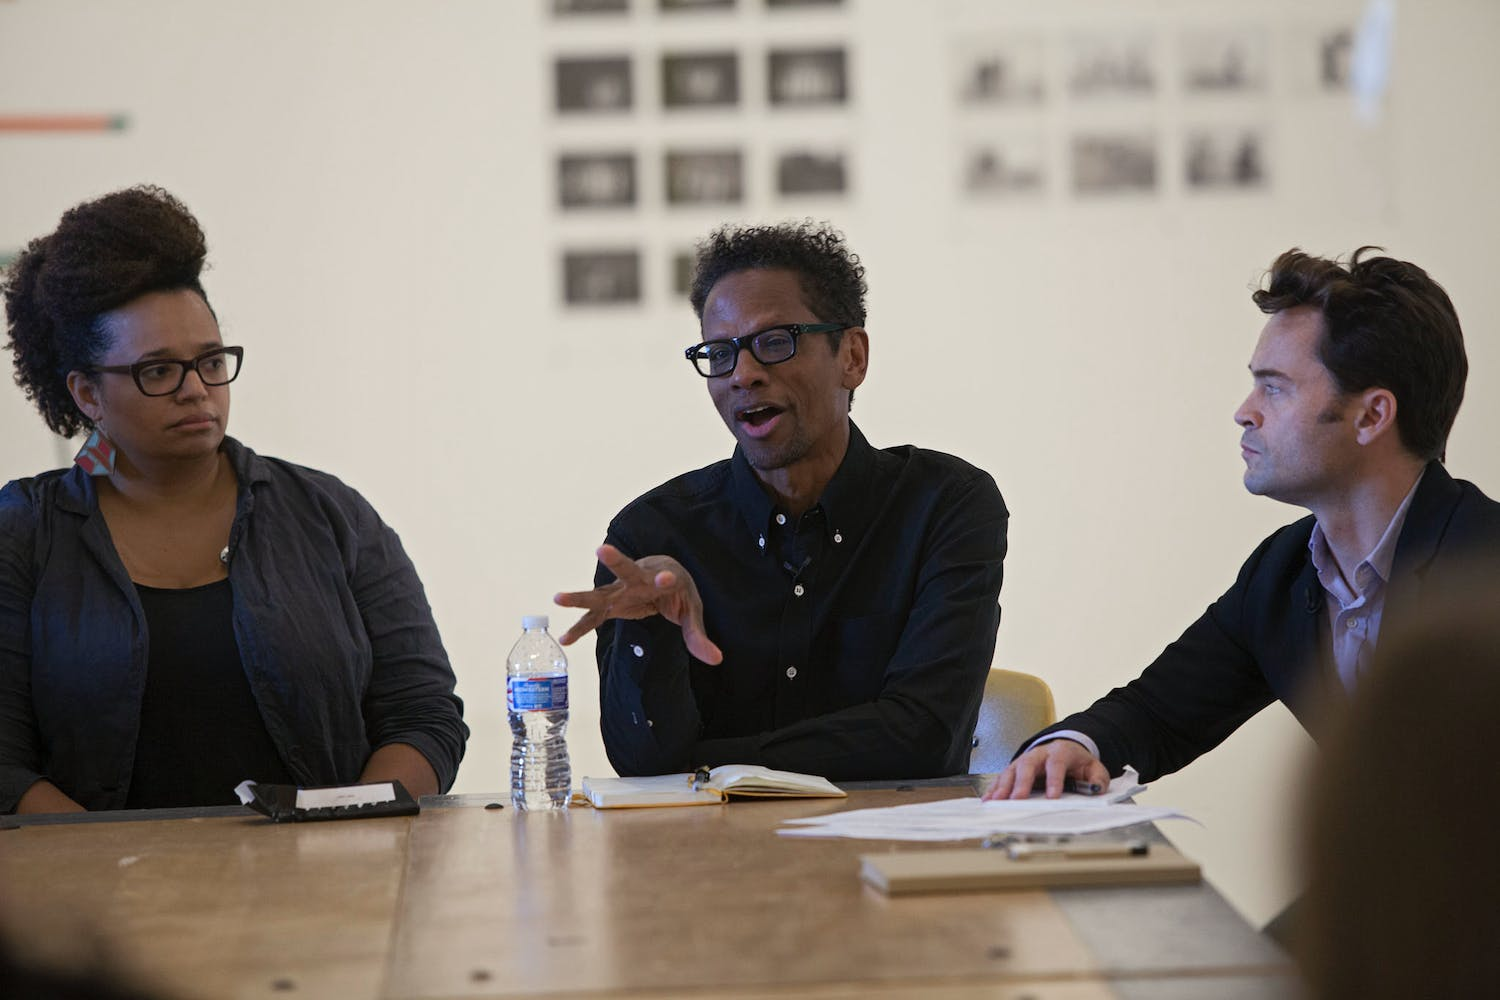 Holding Court: Ralph Lemon, 2014; part of the exhibition Radical Presence: Black Performance in Contemporary Art, 2014